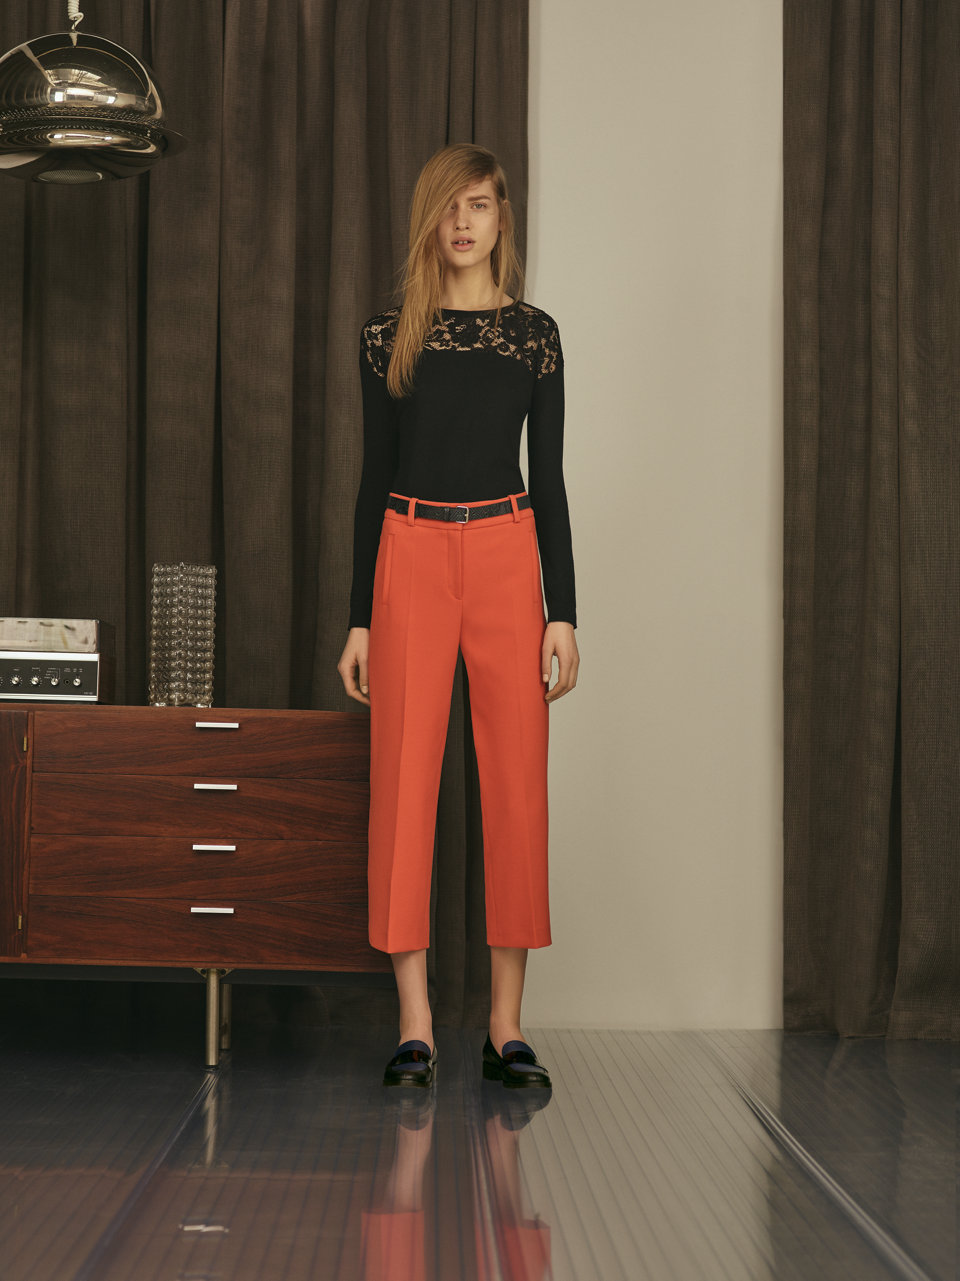 Evening black knitwear and coral trousers by HUGO